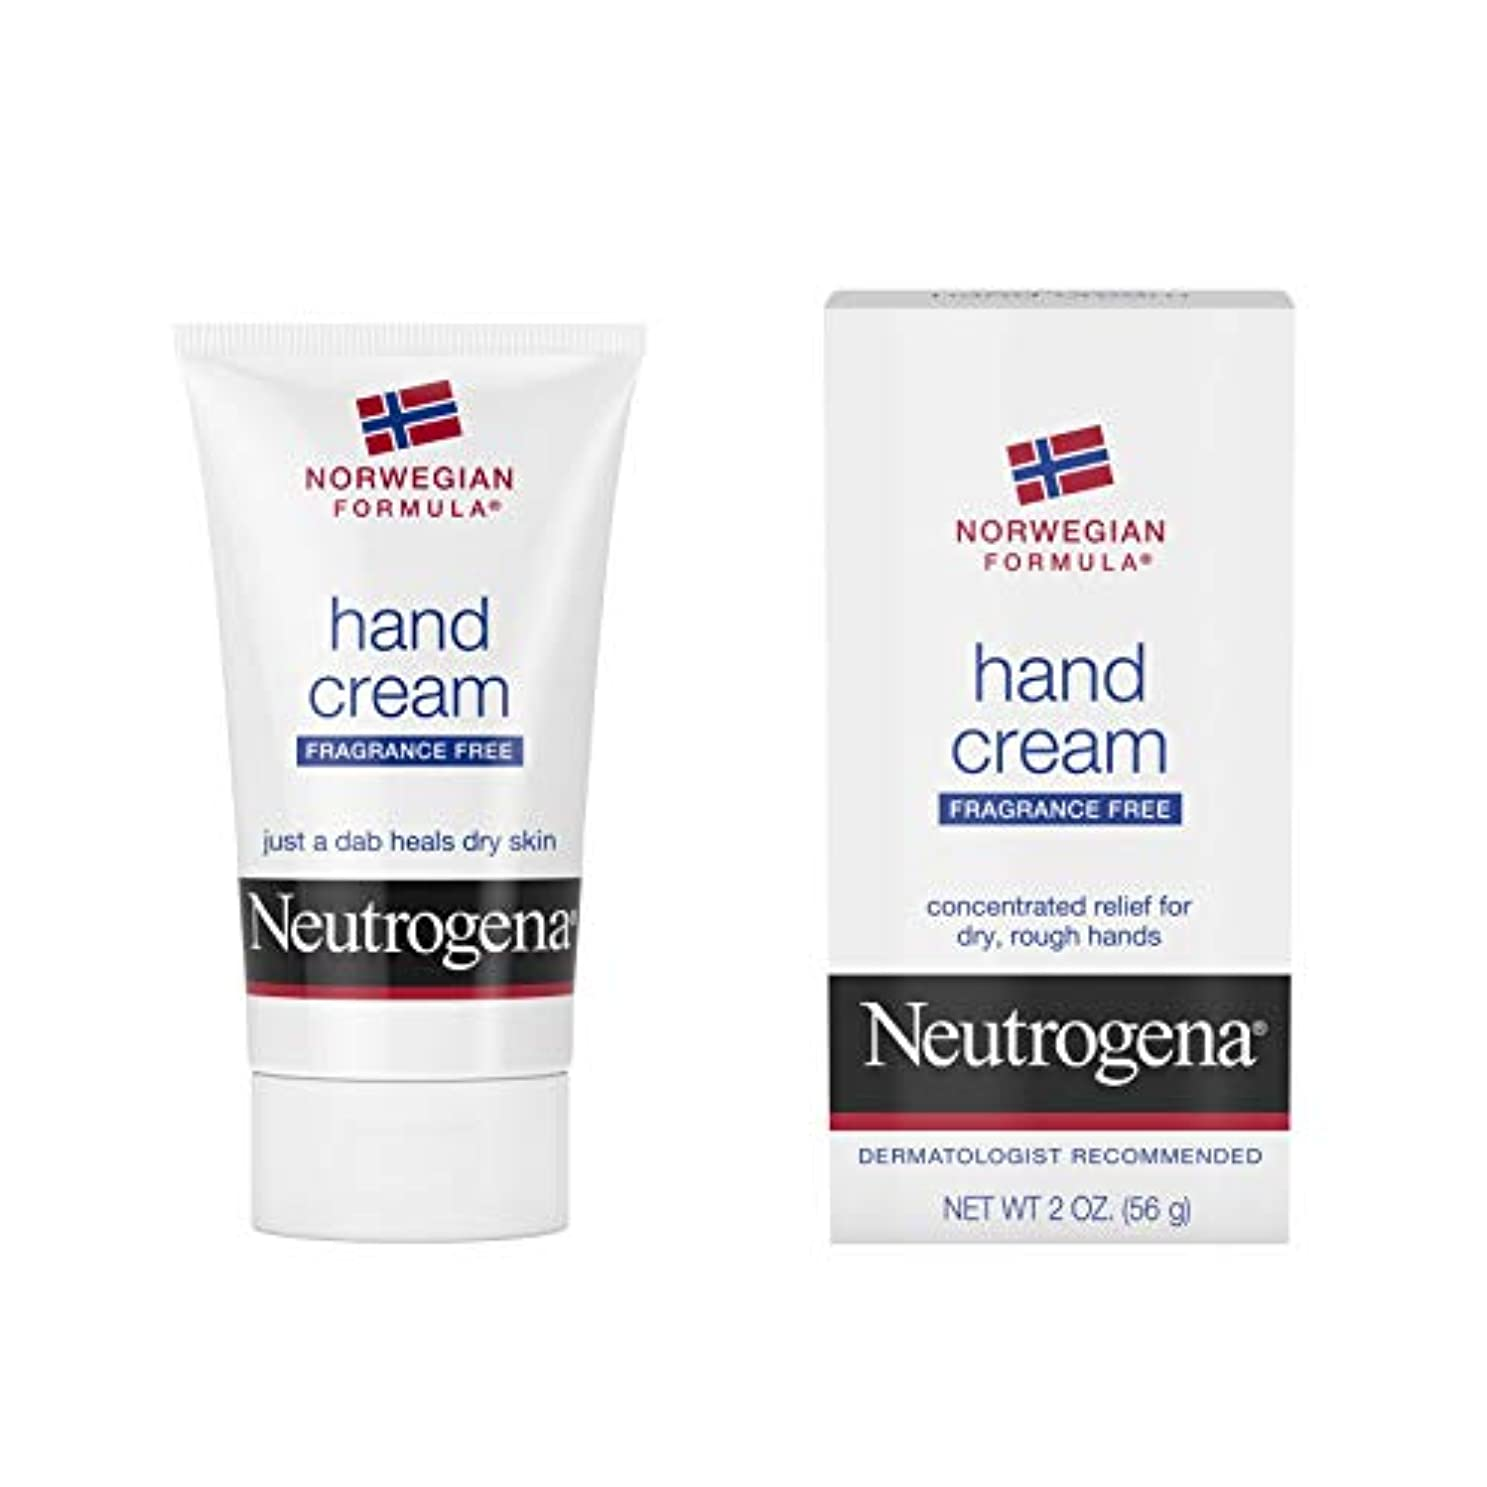 効果的に発生石炭Neutrogena Norwegian Formula Hand Cream Fragrance-Free 60 ml (並行輸入品)